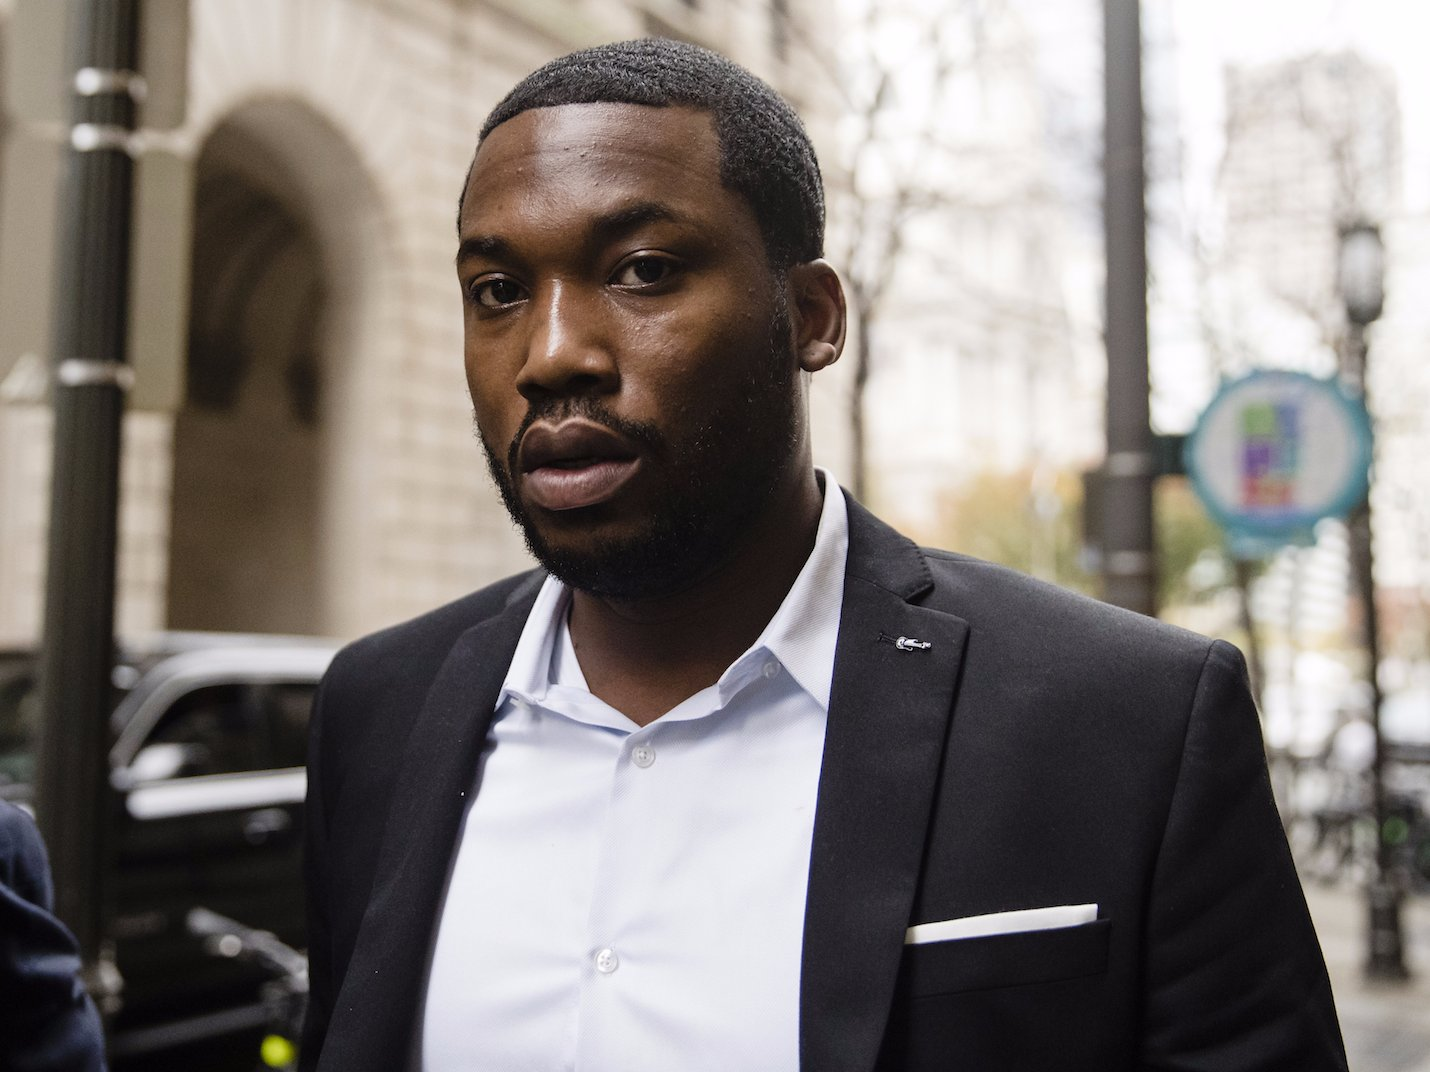 Meek Mill fans sign petition to disbar judge who sentenced him